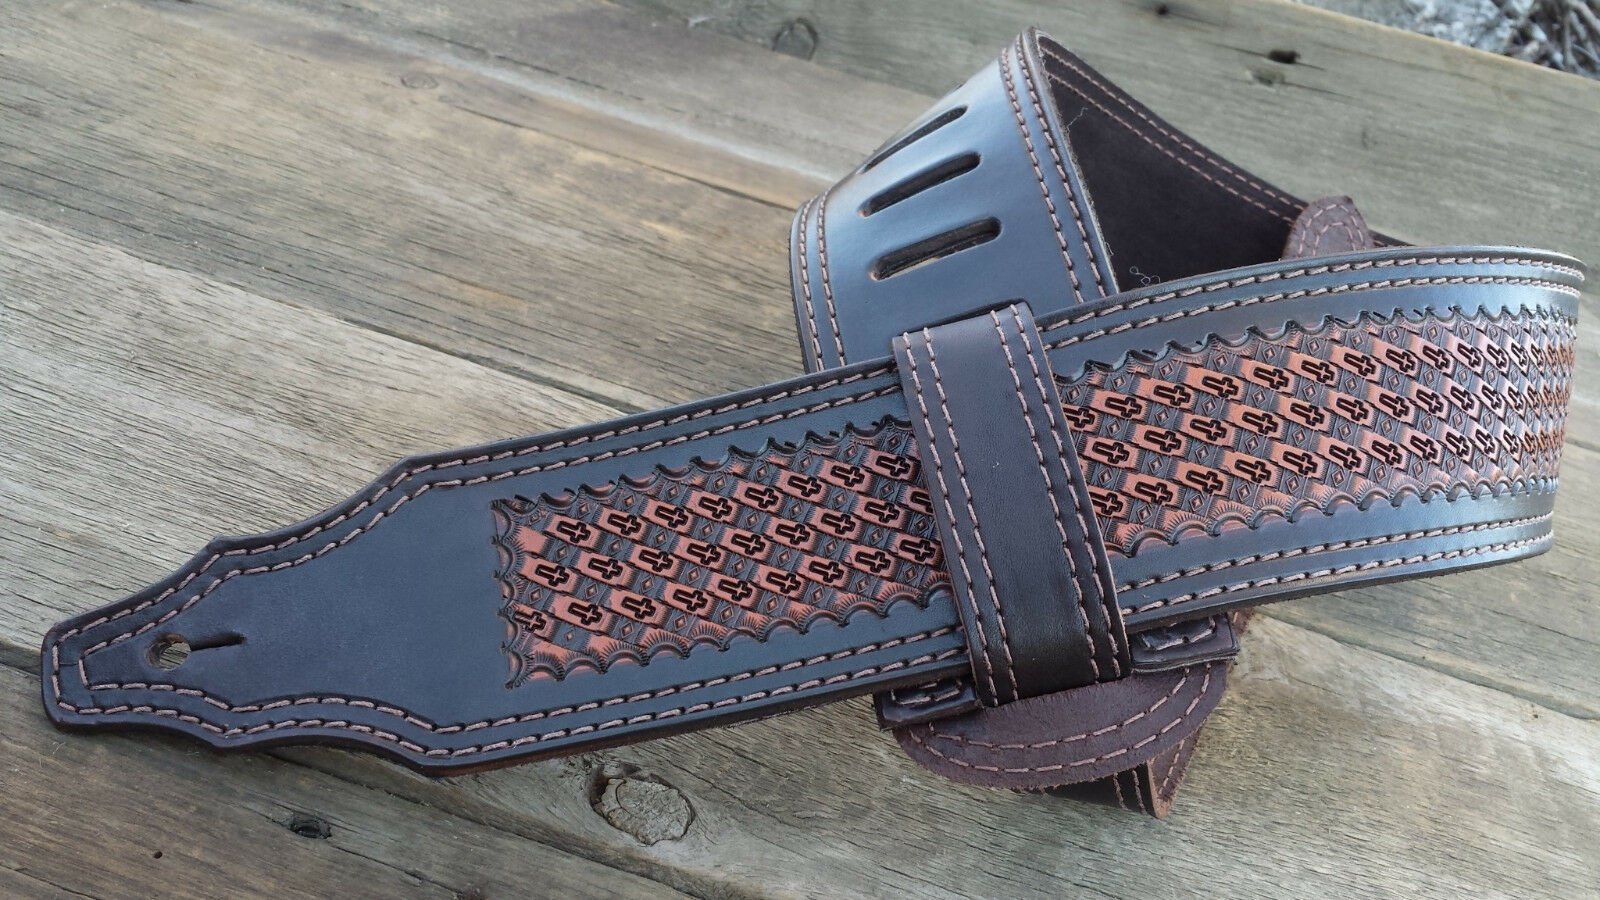 The 3 inch Light braun Diamond Cross Guitar Strap